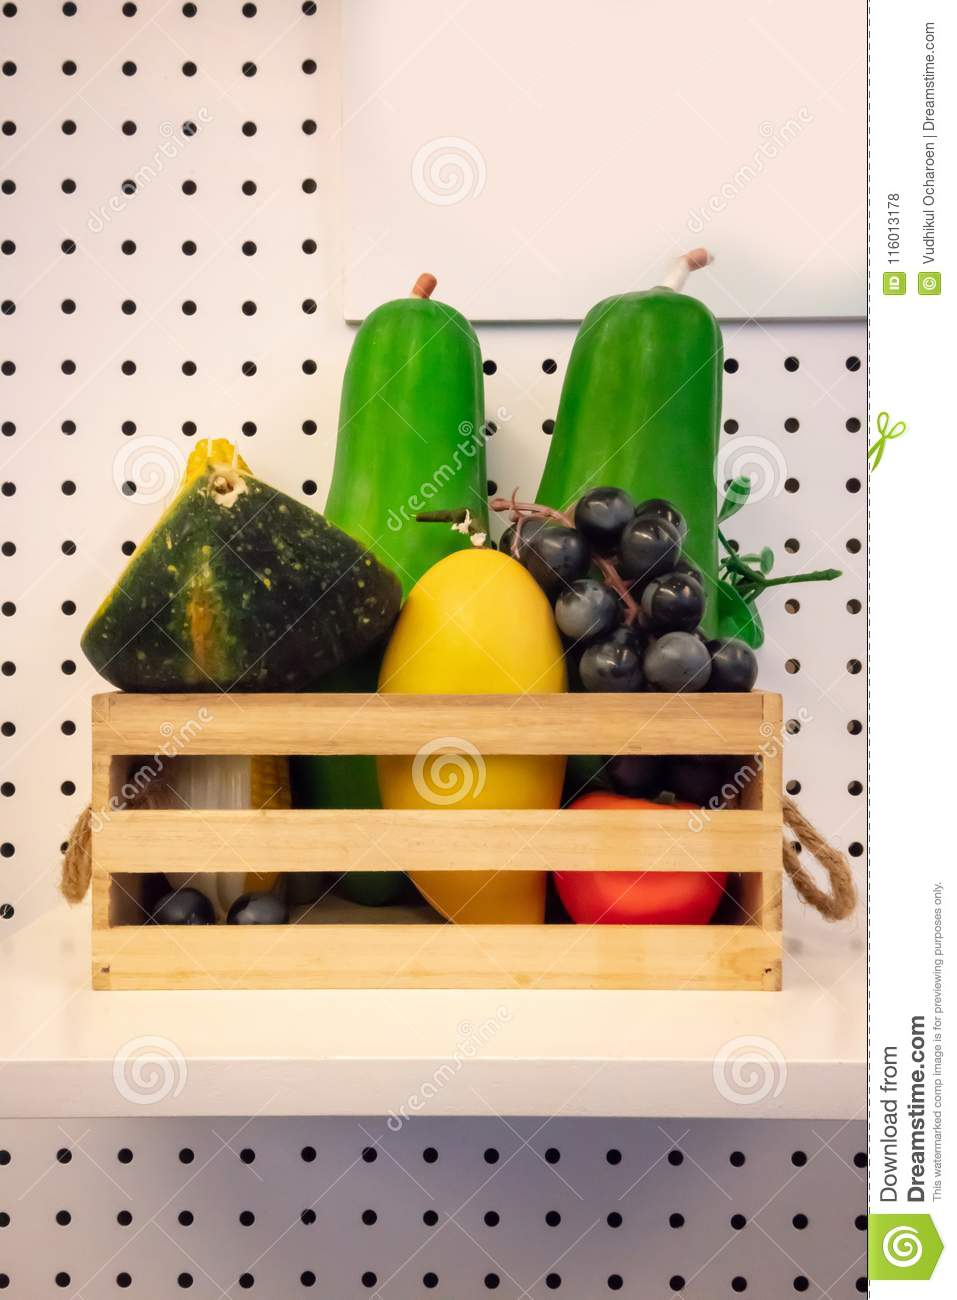 plastic toy fruits and vegetable on wooden basket against